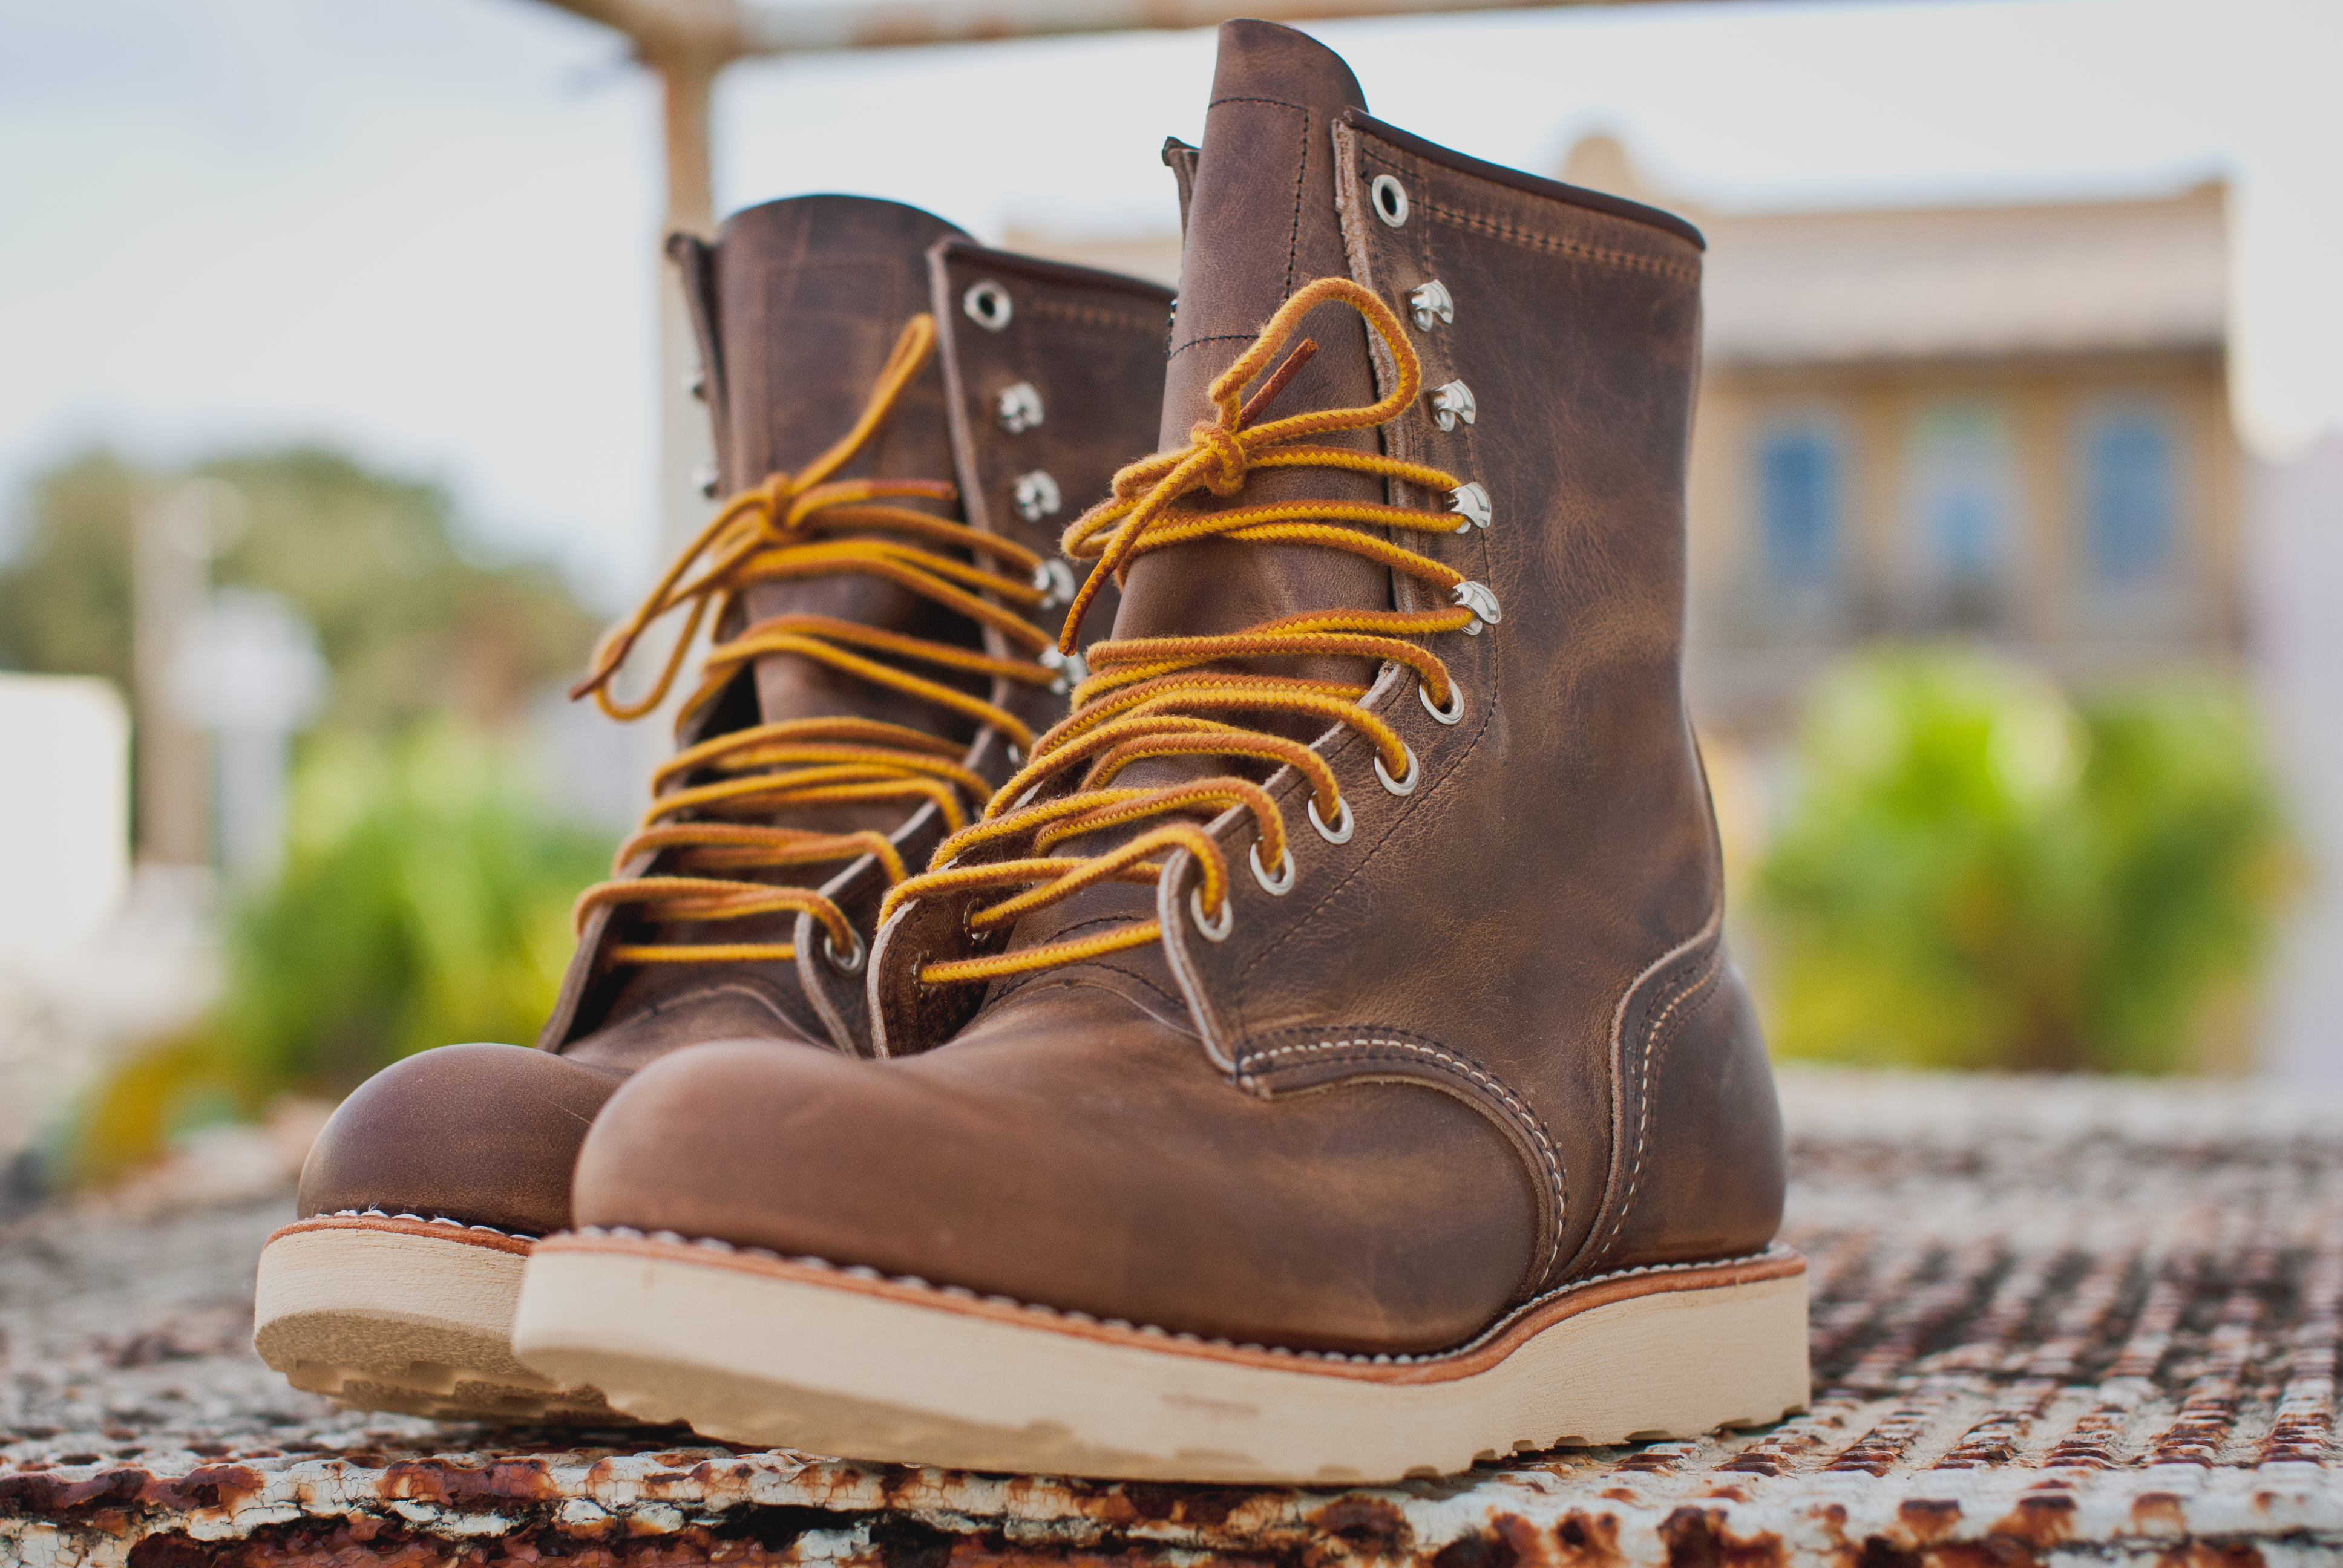 New Patina Red Wing 877 Boots  Gear Patrol